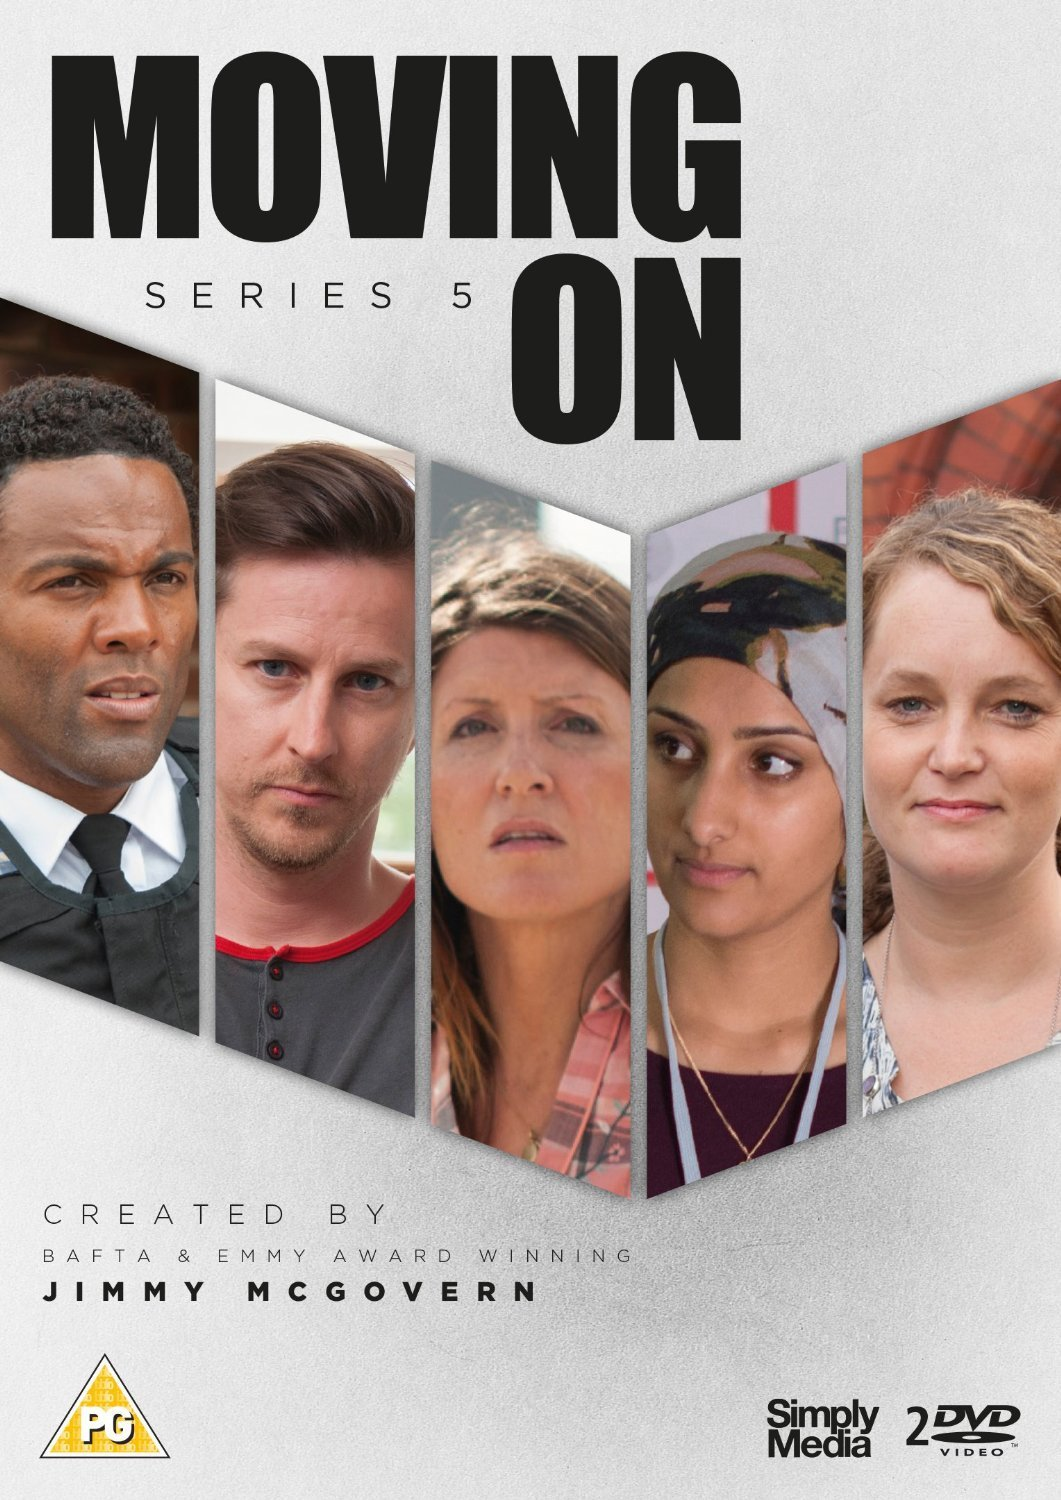 Moving On Series 5 DVD.jpg